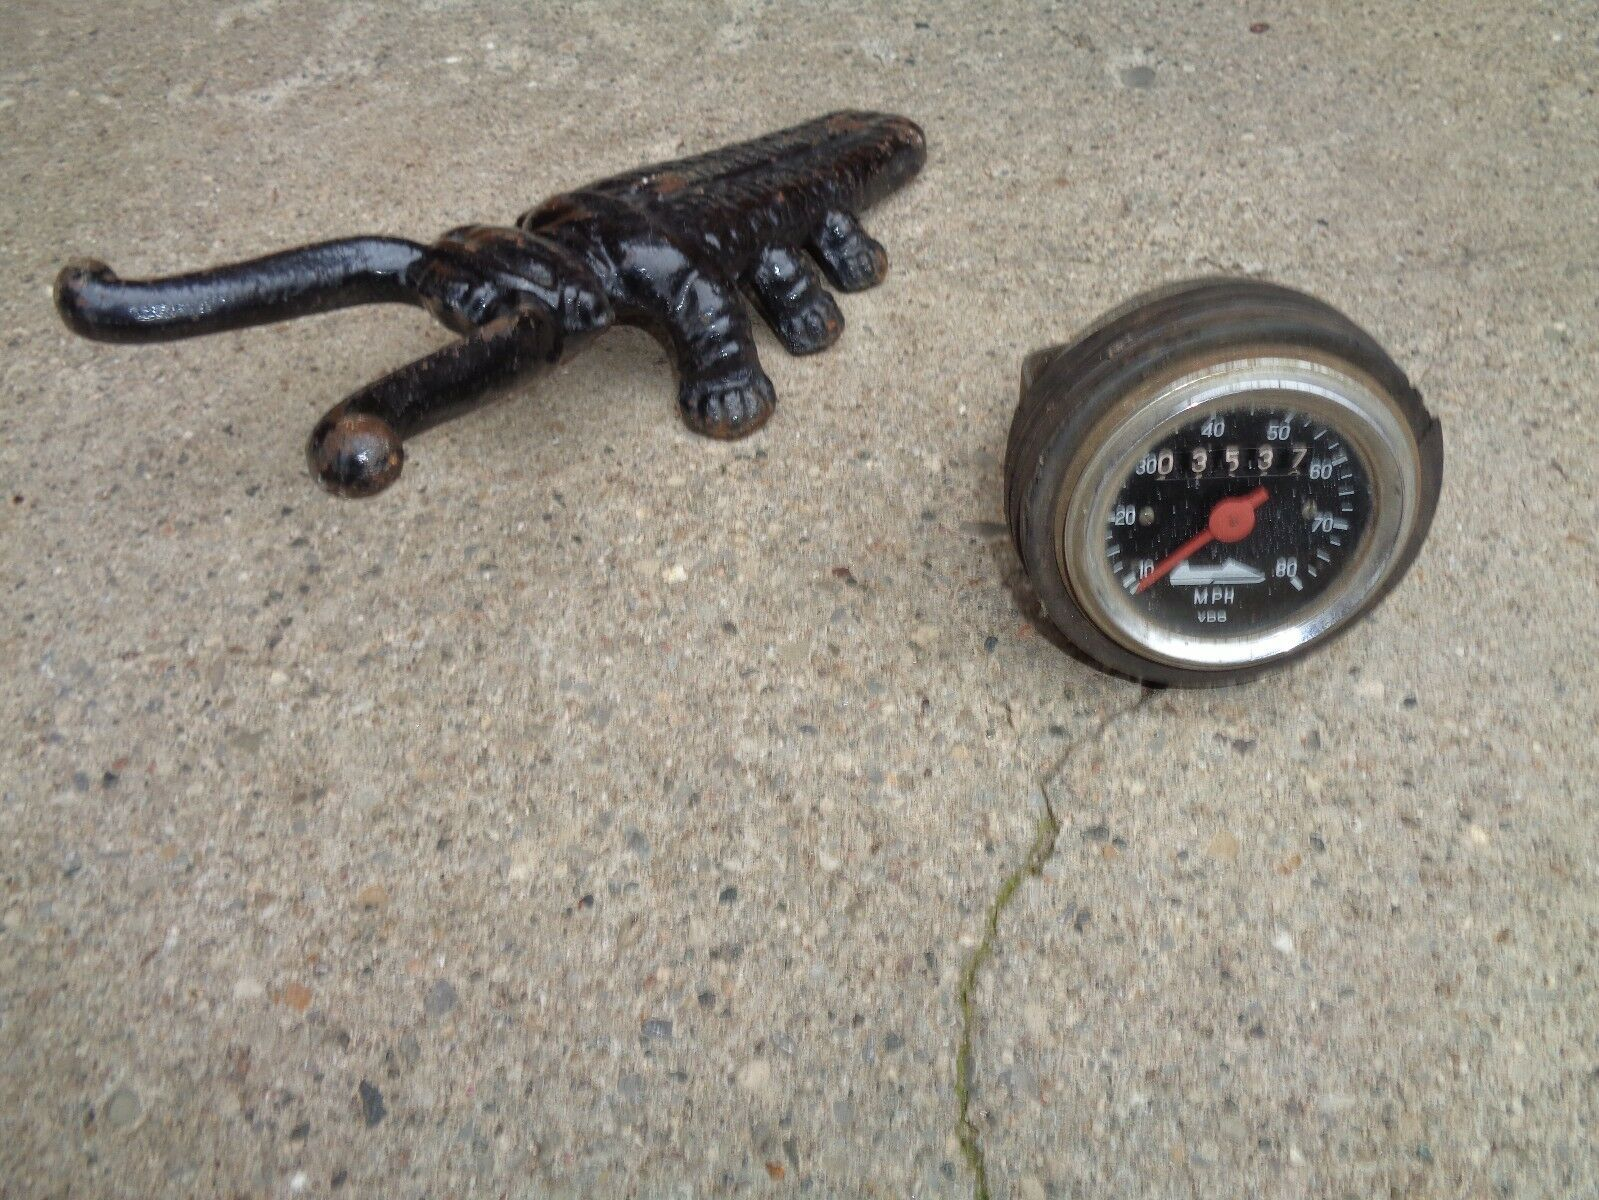 VINTAGE  VDO   SPEEDOMETER FOR A SNOWMOBILE OTHERS DIRTY GOOD  for sale online